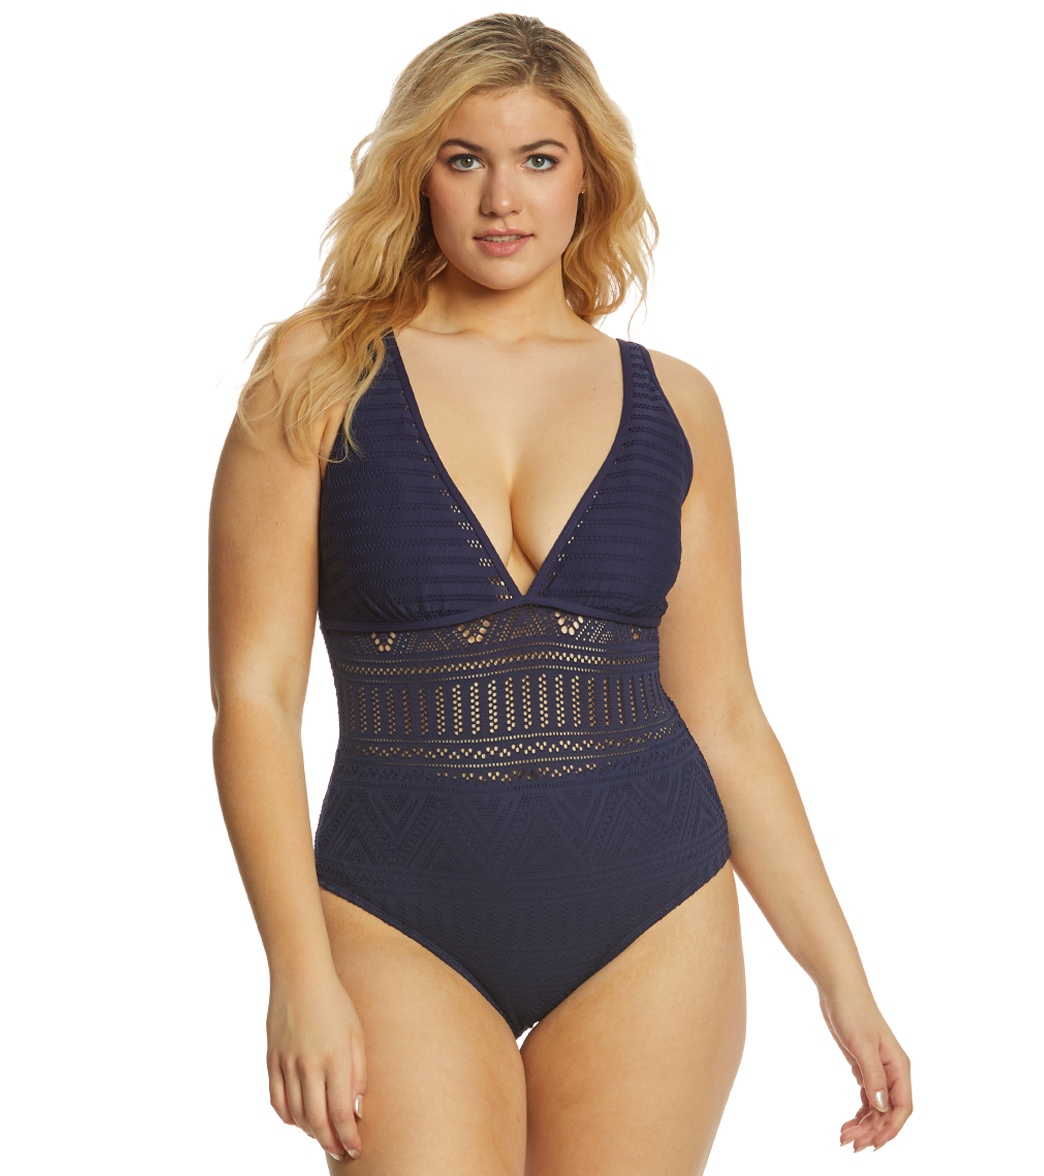 99290a081b1b5 Anne Cole Plus Size Crochet All Day Plunge One Piece Swimsuit at ...